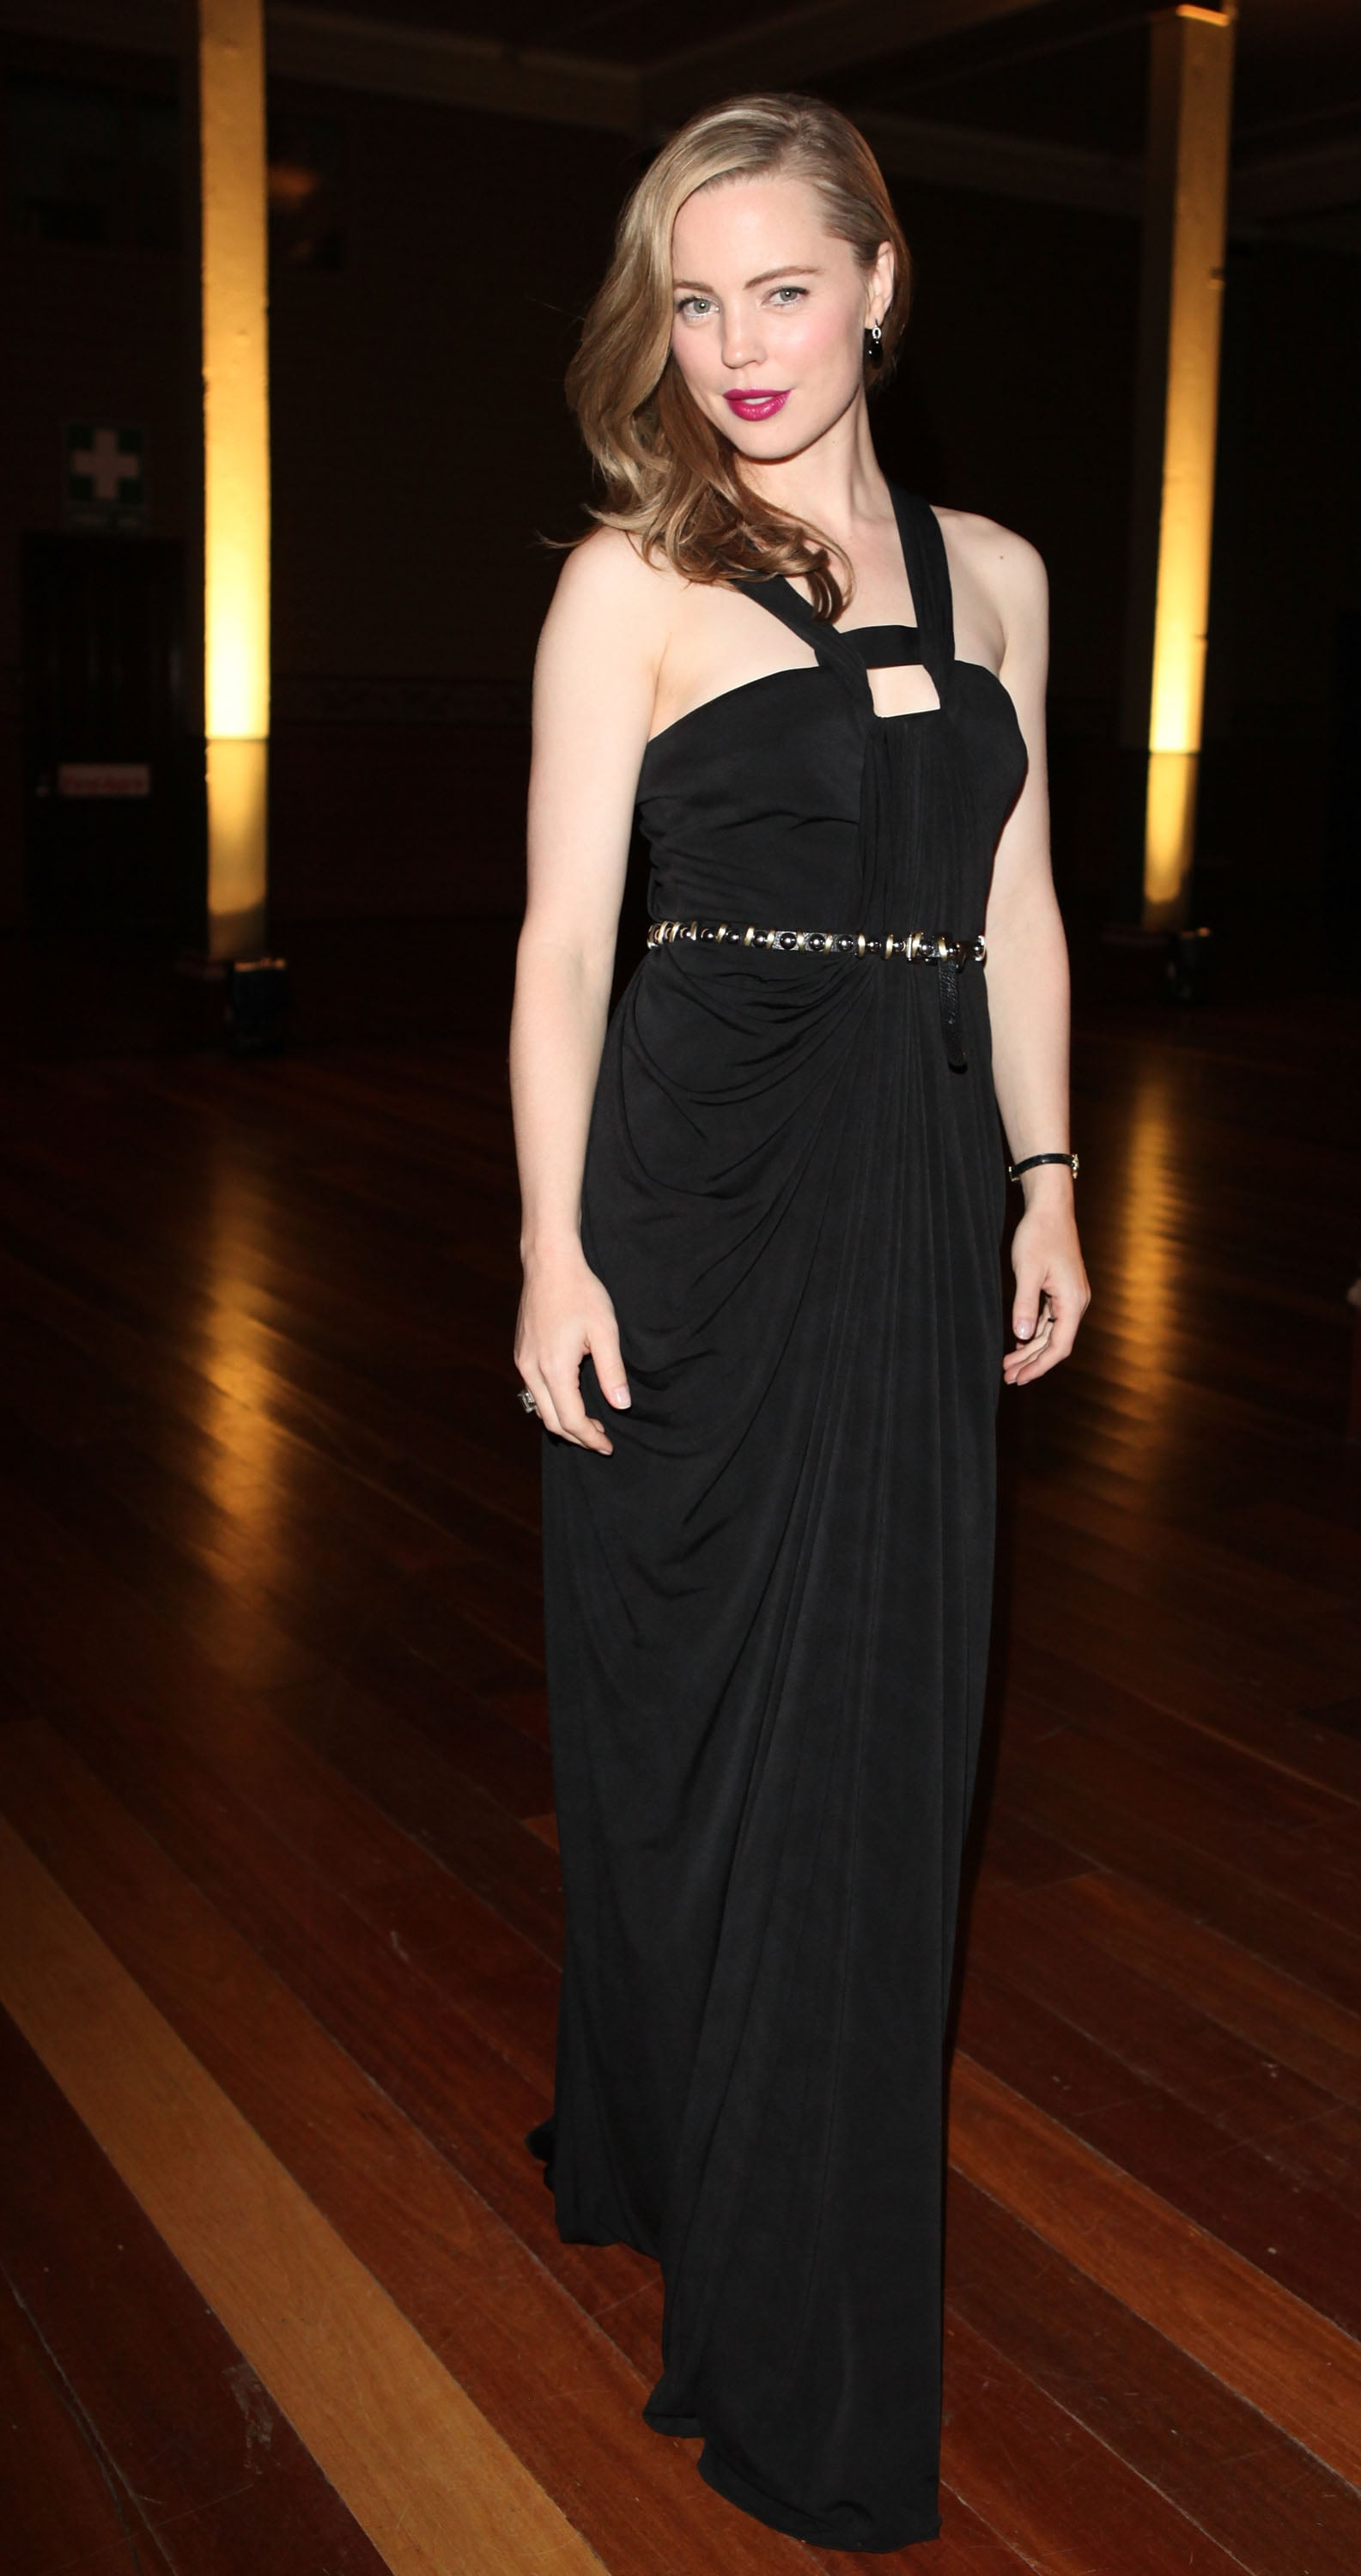 LMFF ambassador Melissa George looked chic in a long black dress.